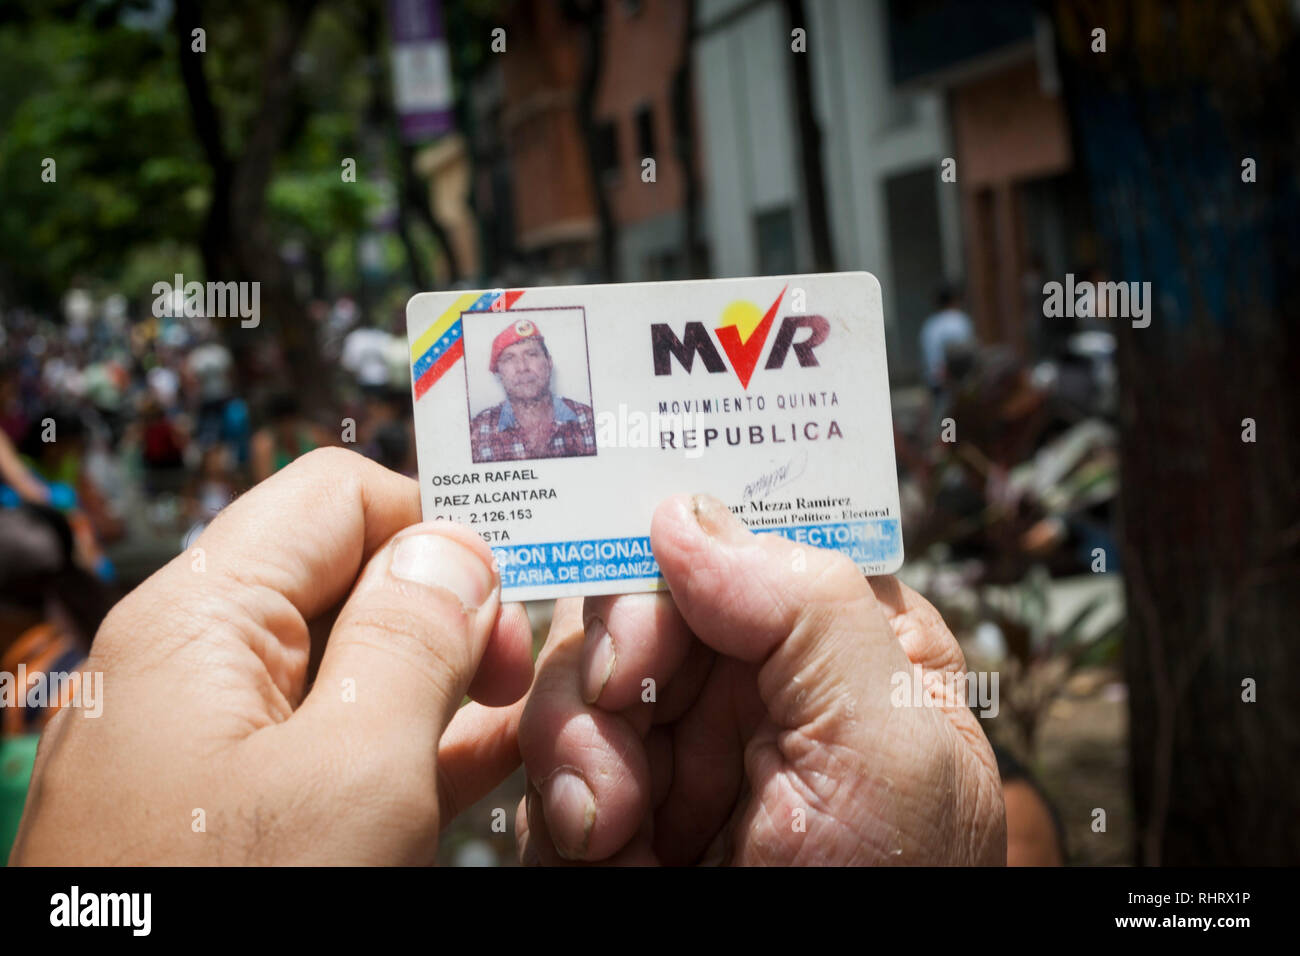 Caracas, Dtto Capital / Venezuela - 03/05/2013. Man showing his card that accredits him as a member of the MVR party. - Stock Image